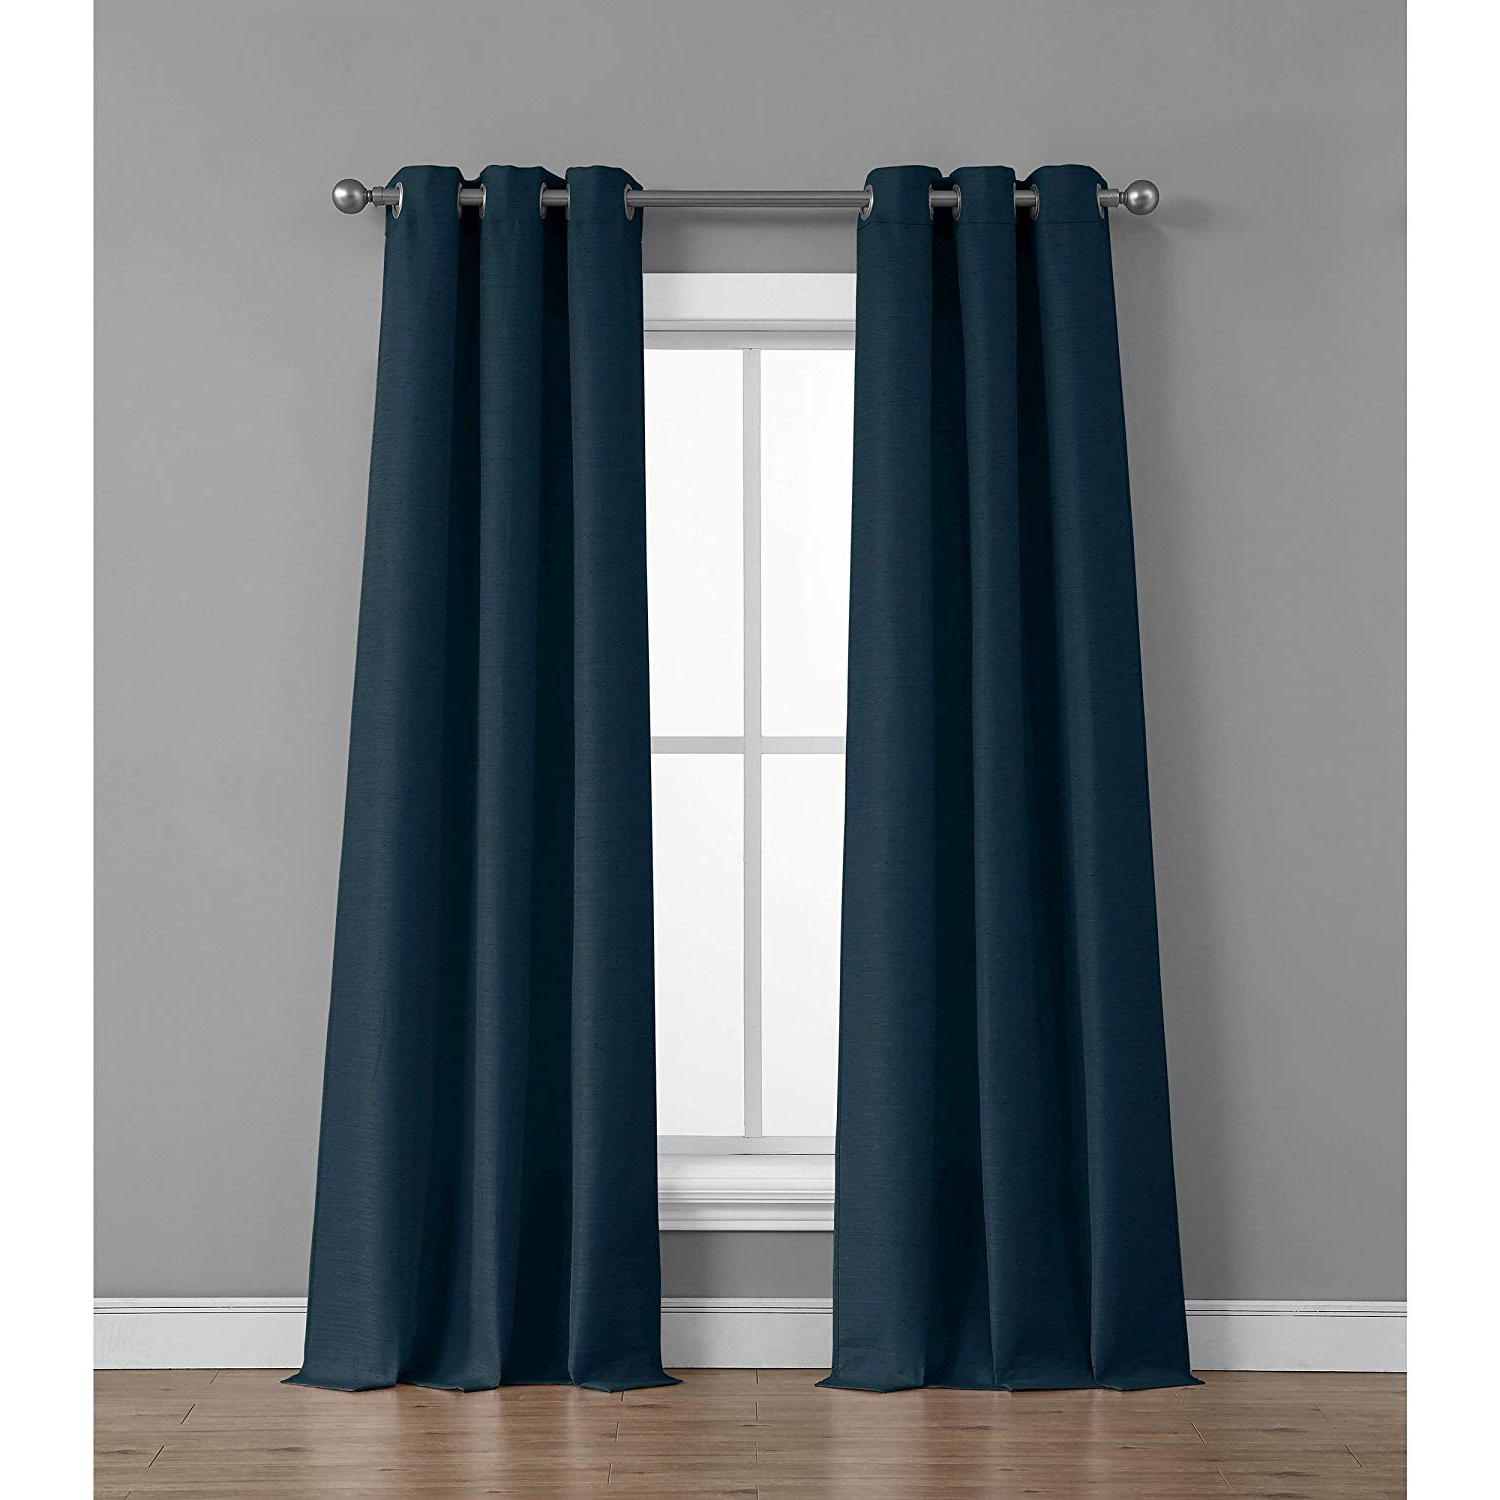 Most Current Overseas Faux Silk Blackout Curtain Panel Pairs In Tribeca Home Raw Faux Silk Curtain Panel Pair, 76 In. X 84 In, Indigo (Gallery 18 of 20)